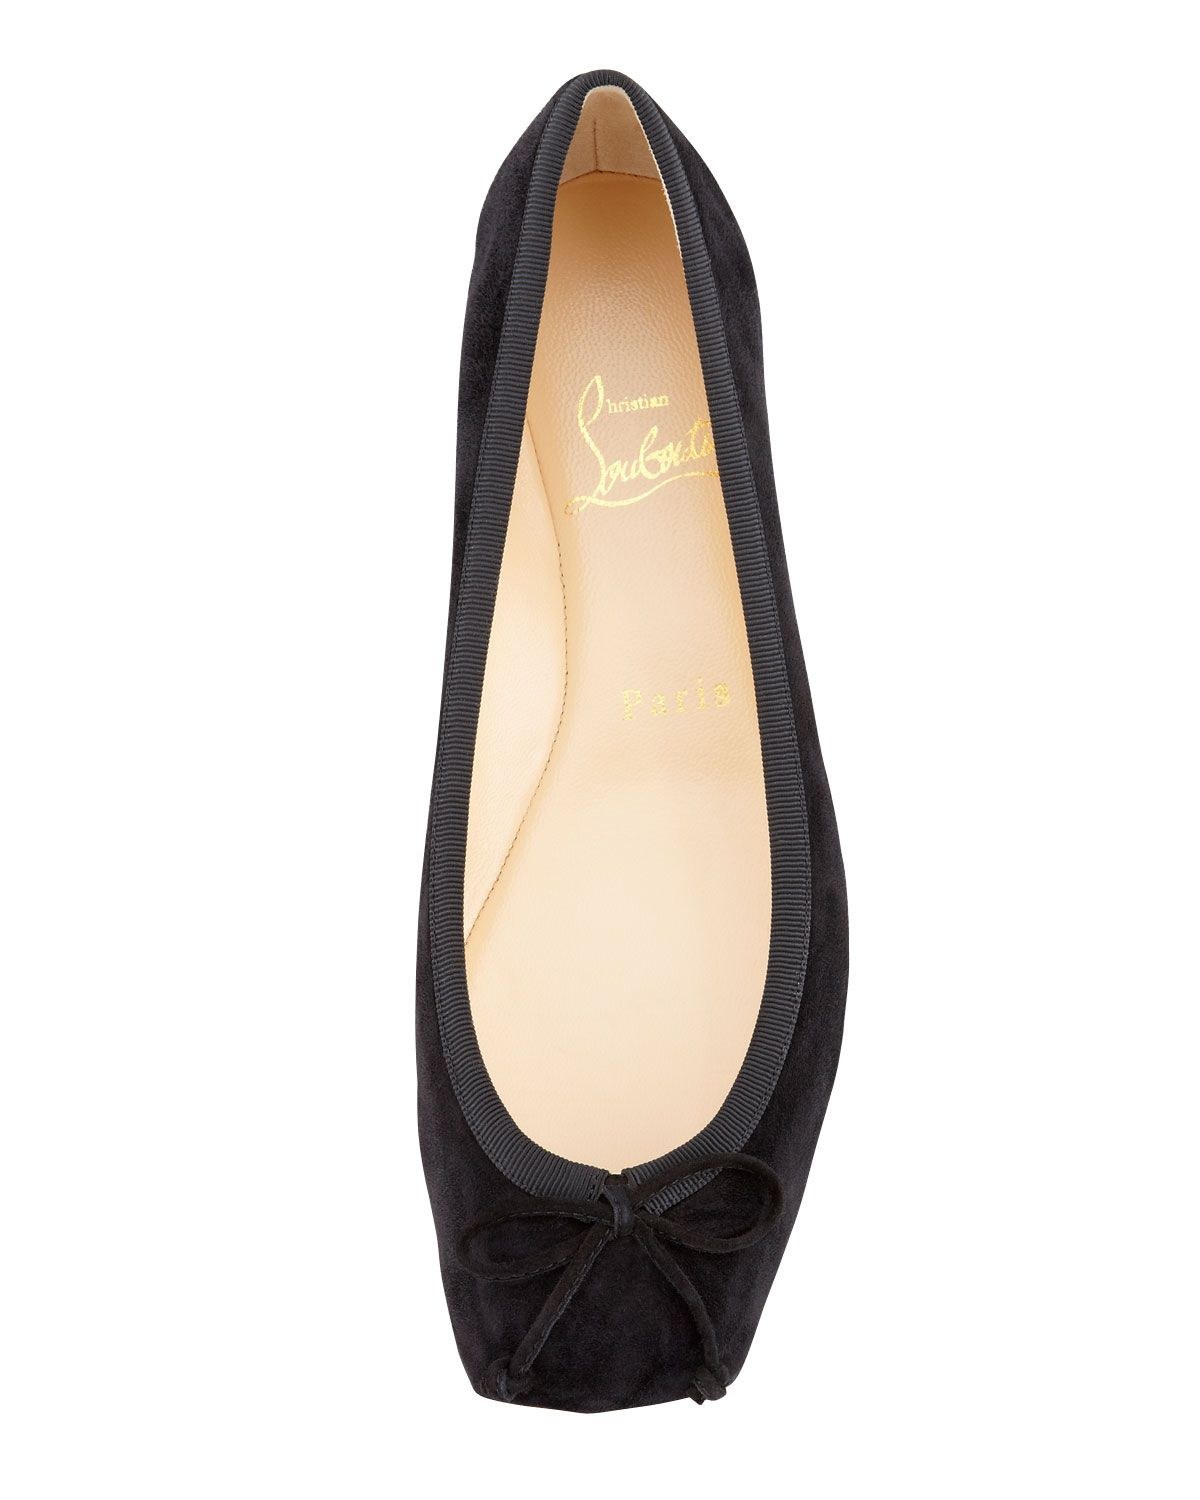 d1e69af3b Christian Louboutin Rosel Suede Square-Toe Ballerina Flat, $495 ...